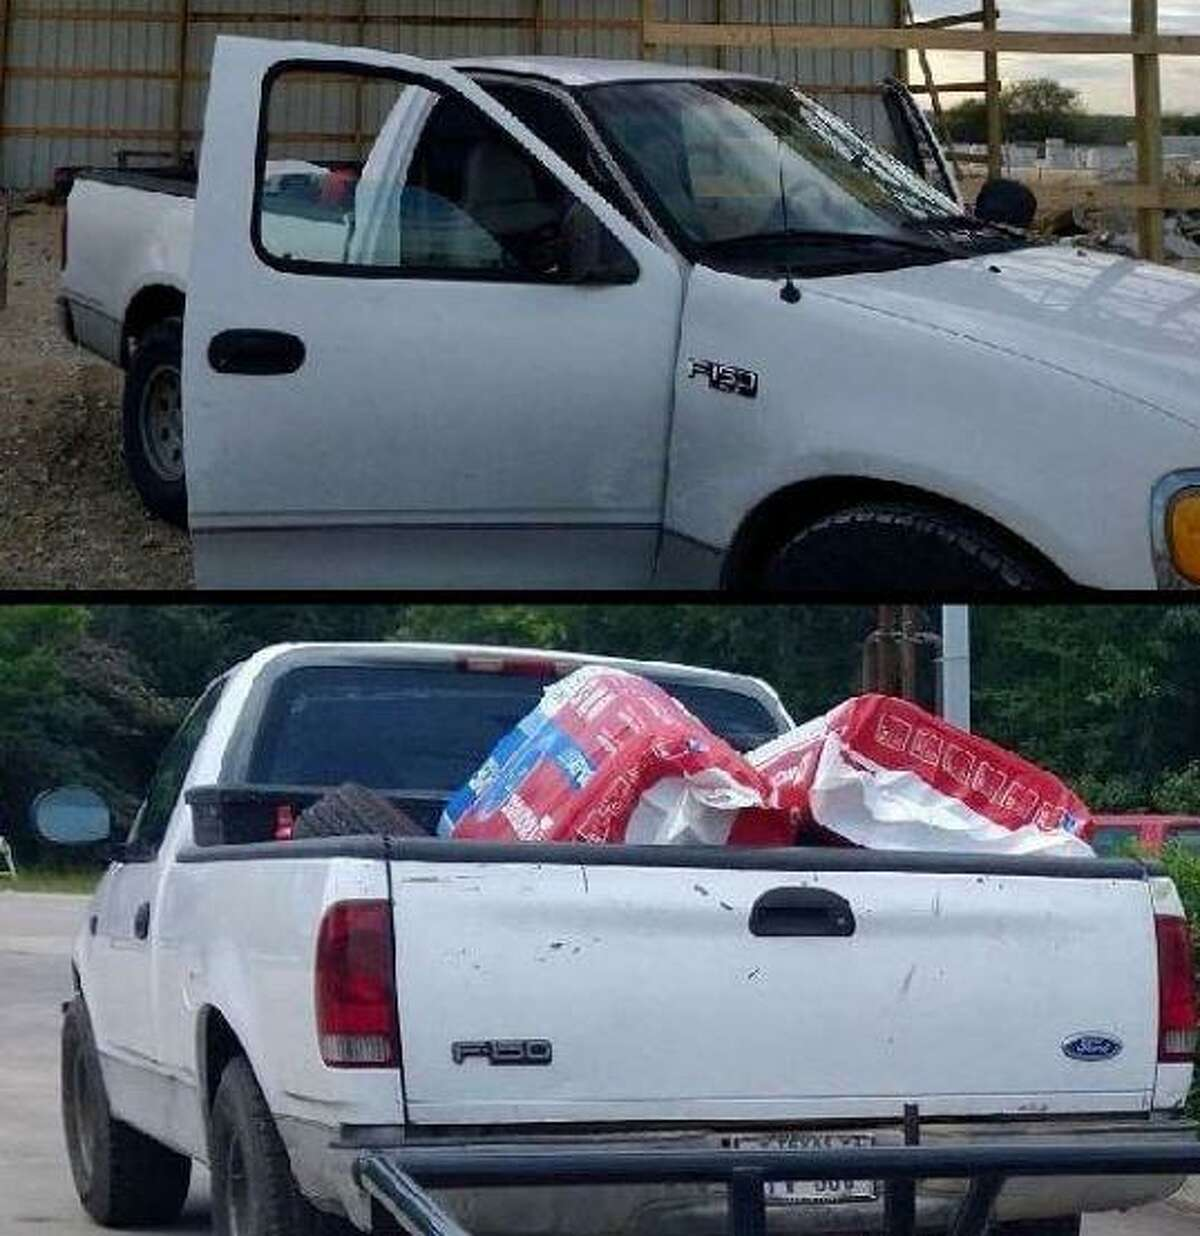 Photos released by authorities show a reportedly stolen Ford F-150.